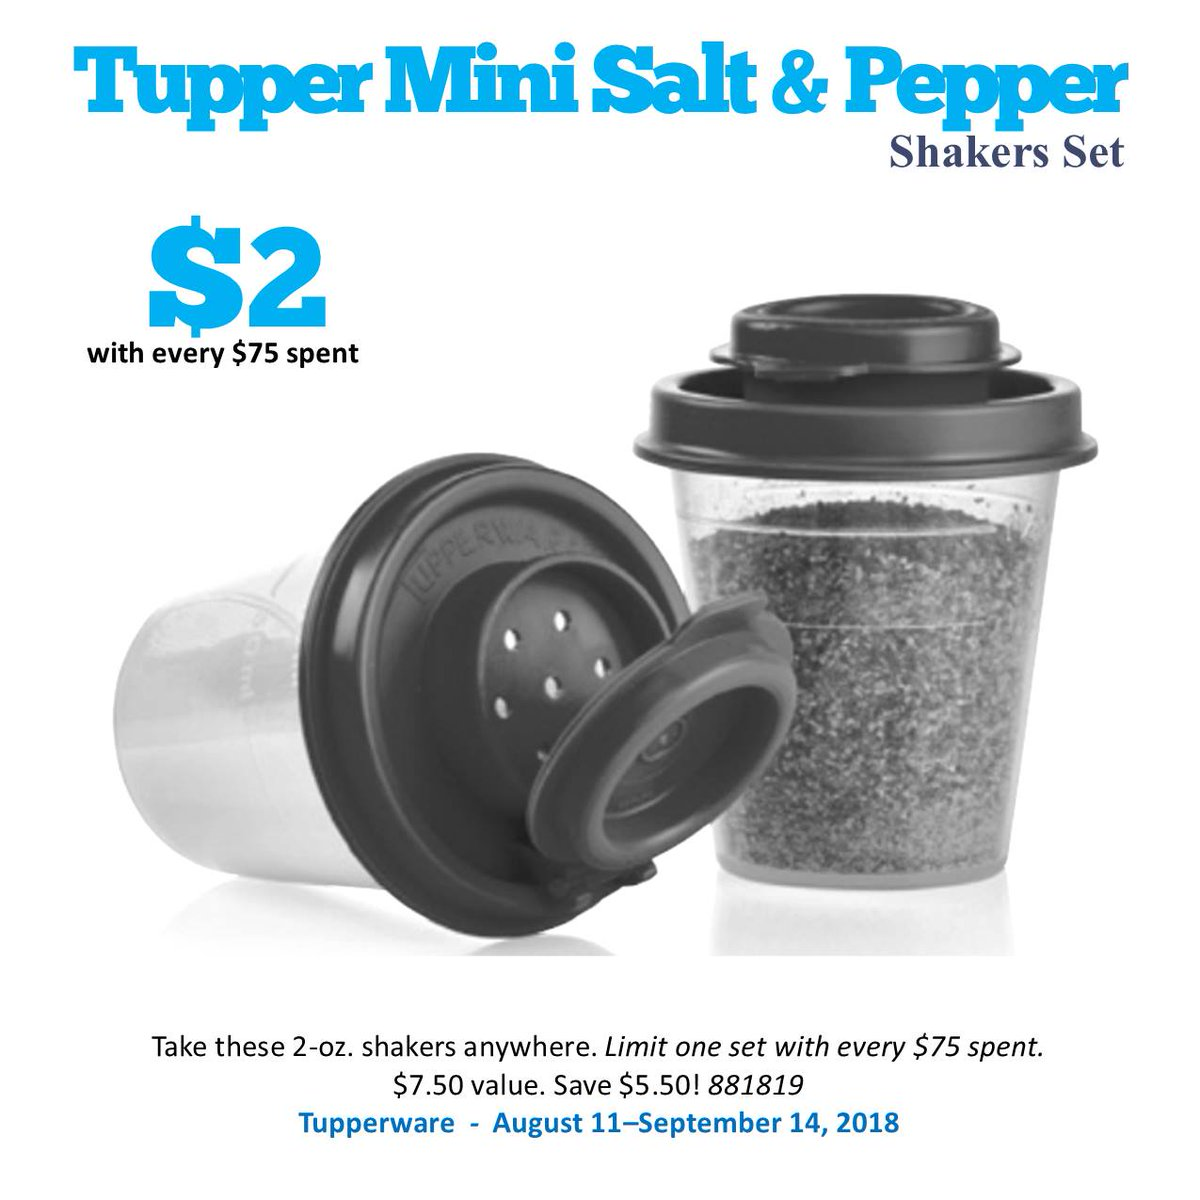 Abigail Manwell Tupperware Consultant On Twitter Tupper Mini Salt And Pepper Shakers Only 2 With A 75 Order Surprise Color Seals Contact Me To Order Tupperware Https T Co Pwtyfdo0x5